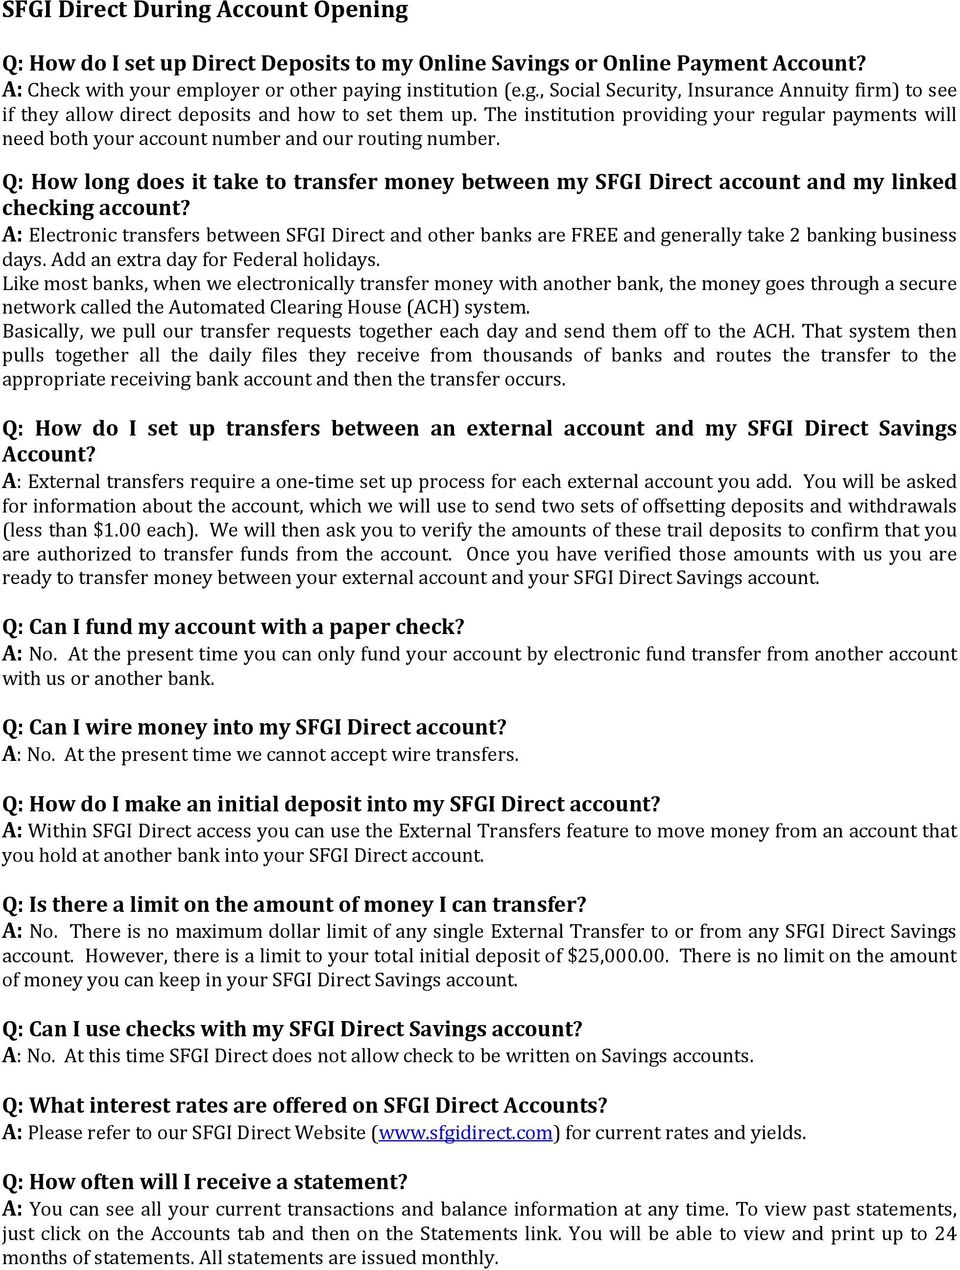 Sfgi Direct Basics Q How Do I Open An Account A To Wiring Money Routing Number Long Does It Take Transfer Between My And